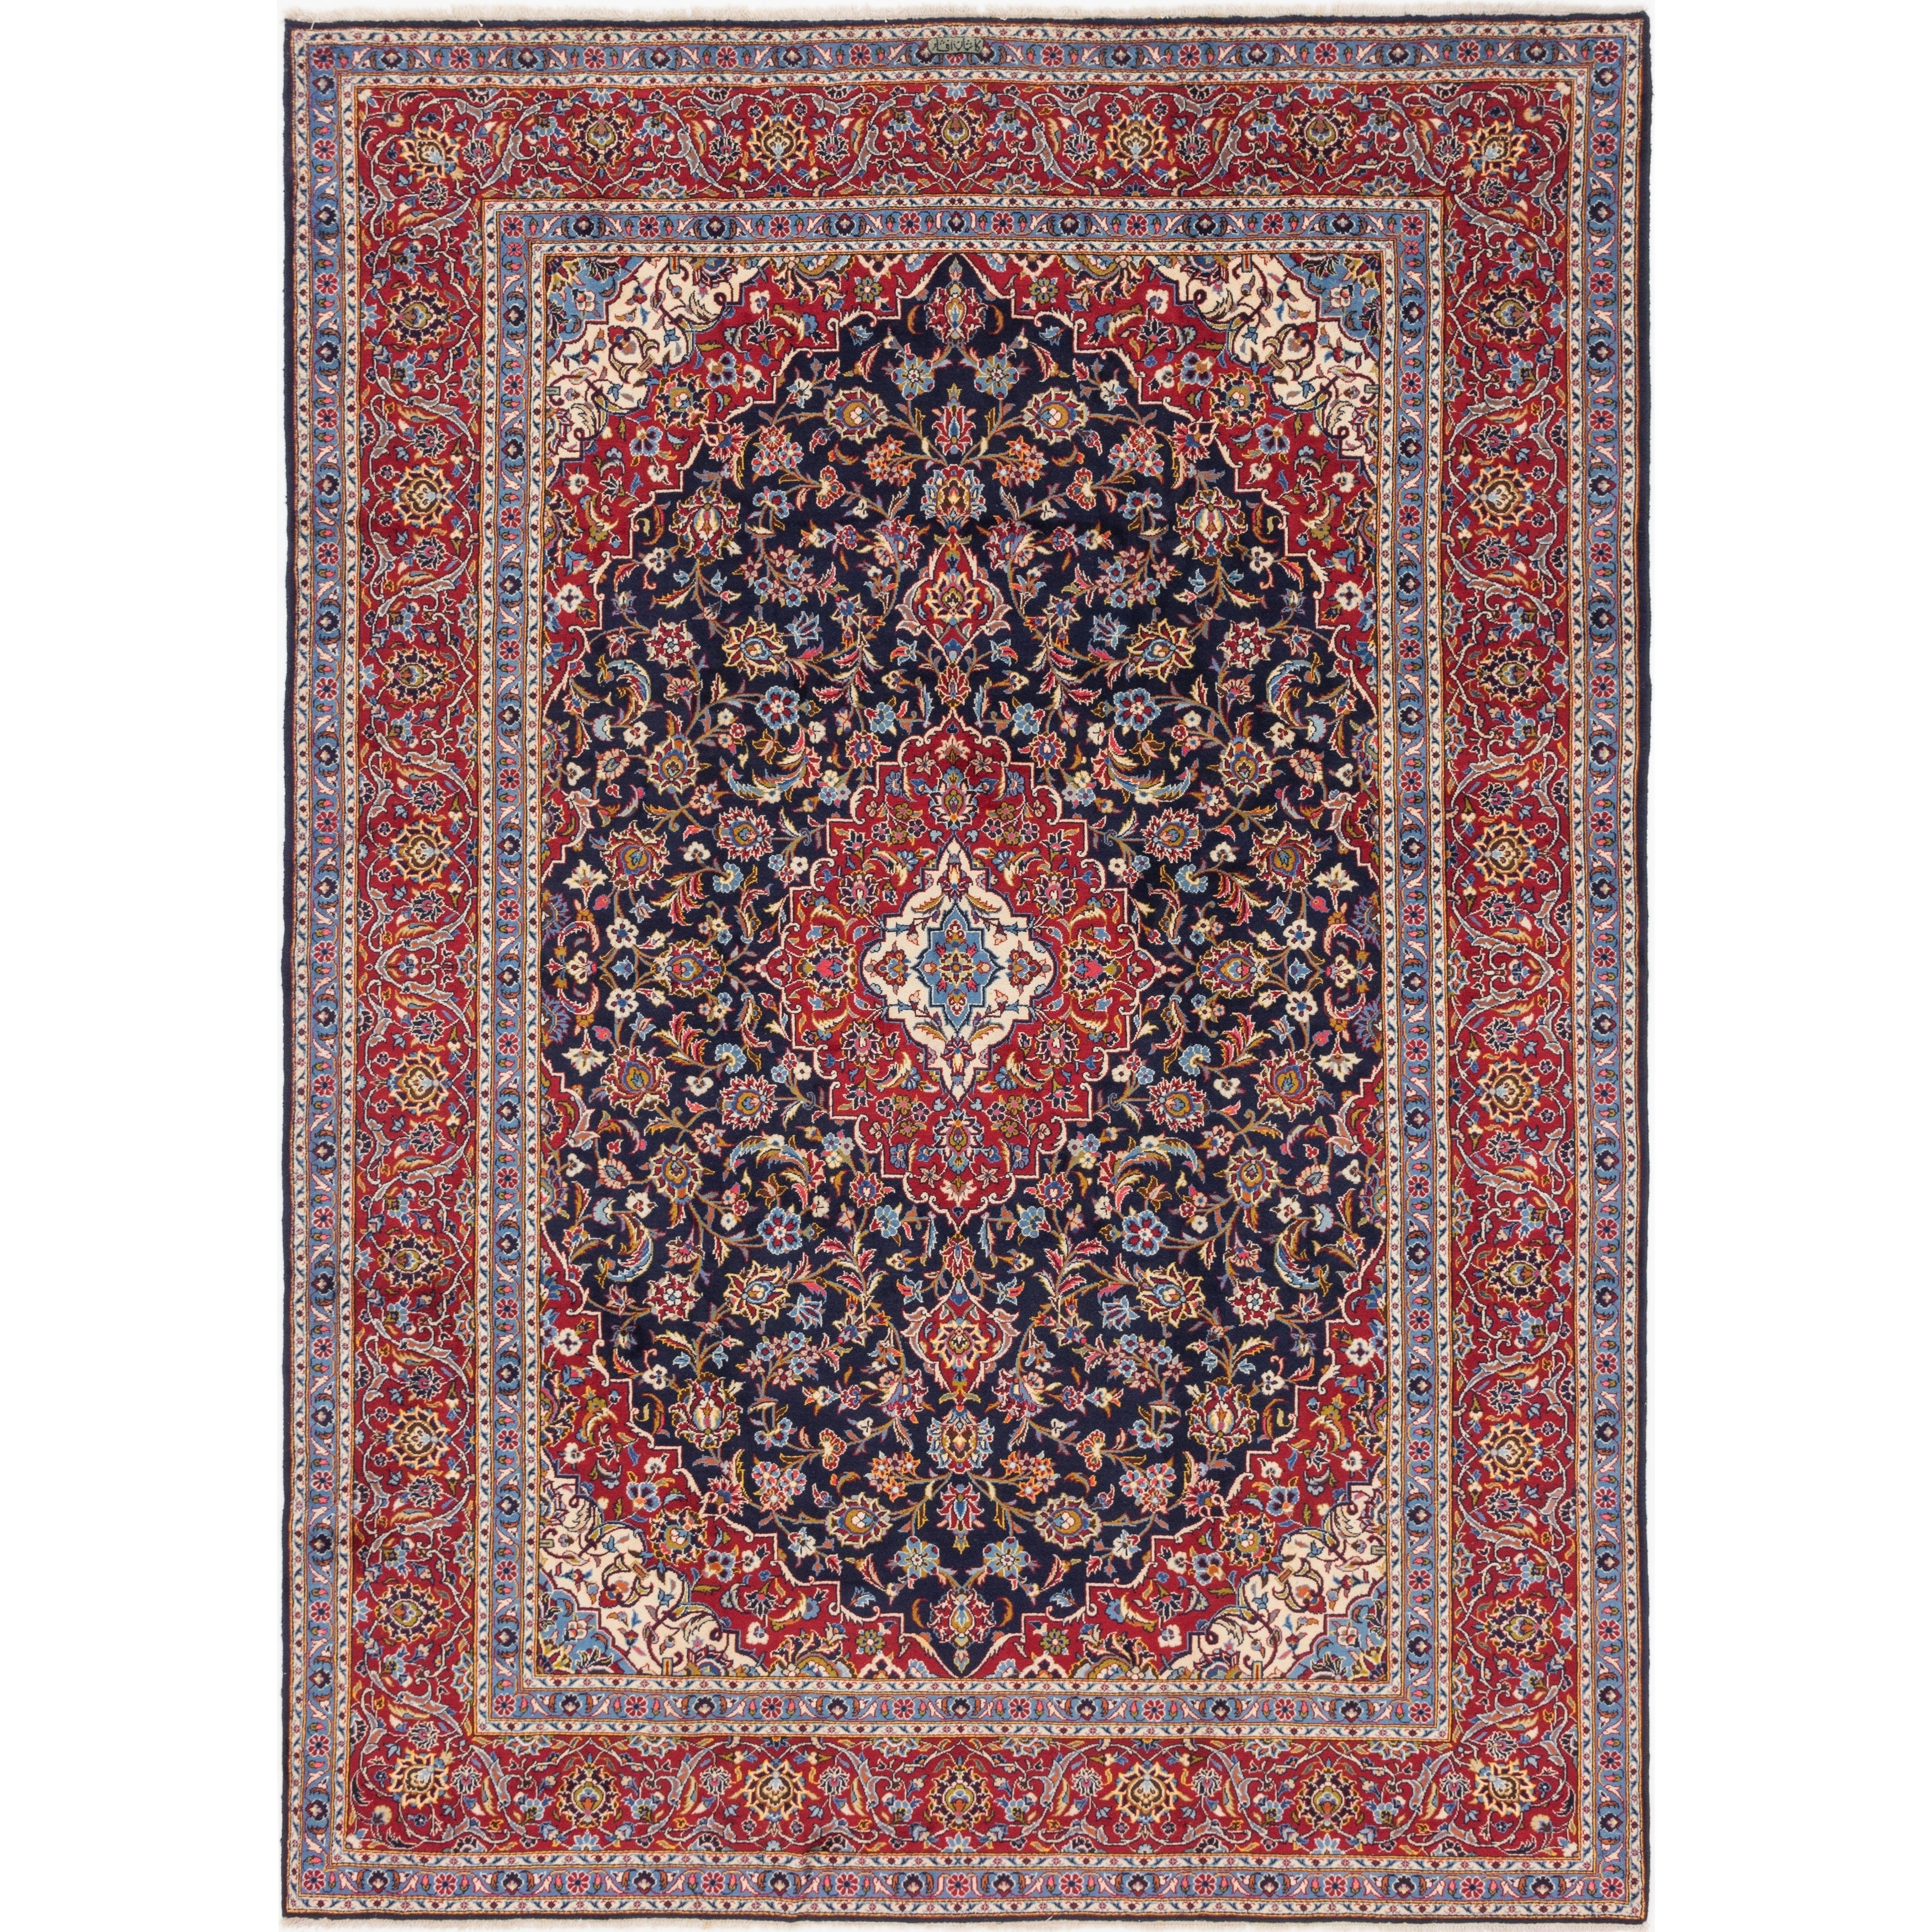 Hand Knotted Kashan Wool Area Rug - 10 x 13 10 (Navy blue - 10 x 13 10)